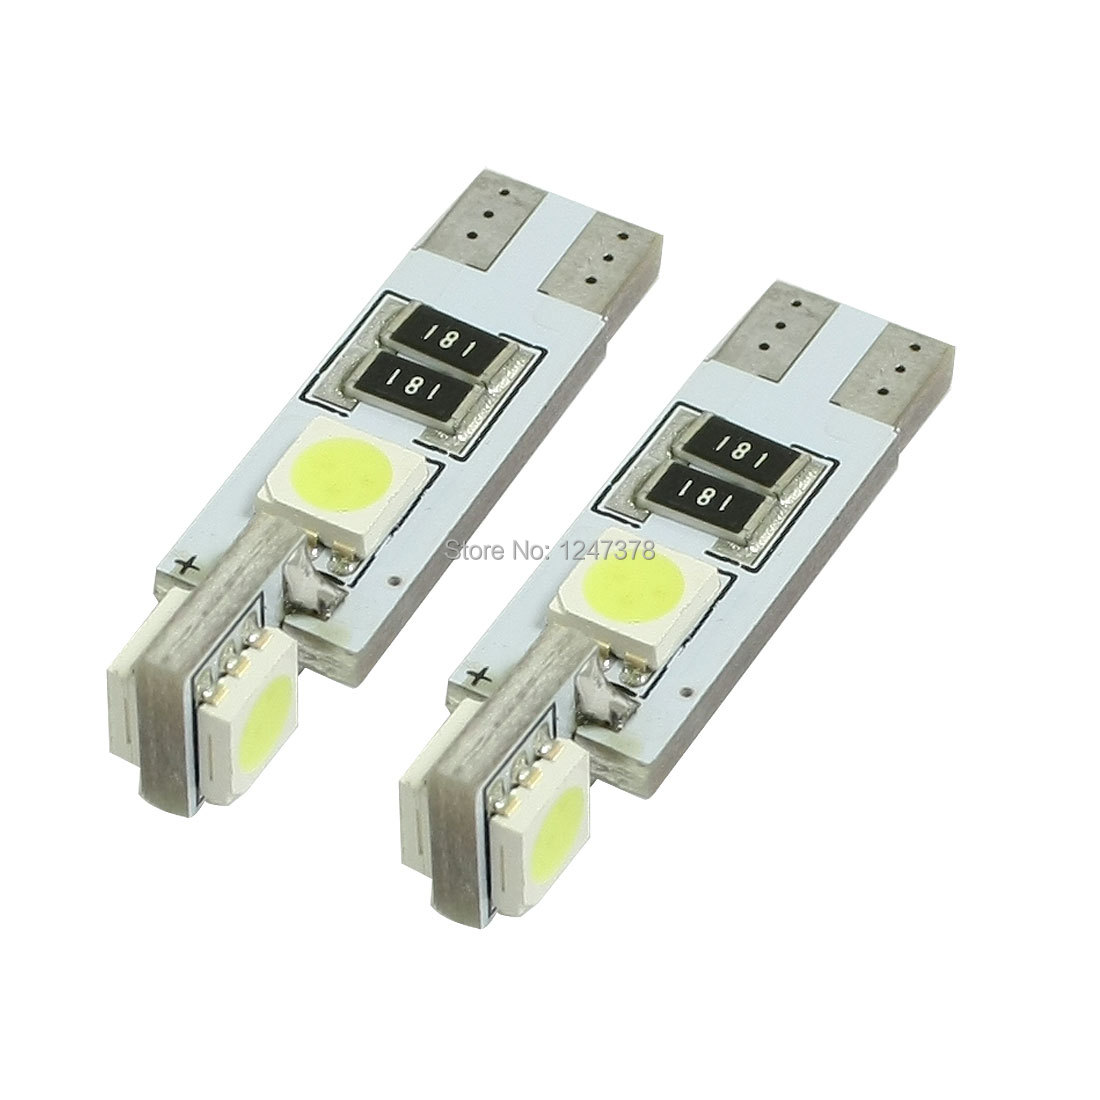 2 Pcs/lot Car Vehicle T10 5050 SMD W5W 4 White LED Canbus Wedge Replacement Lamp Bulb door dome Trunk light(China (Mainland))